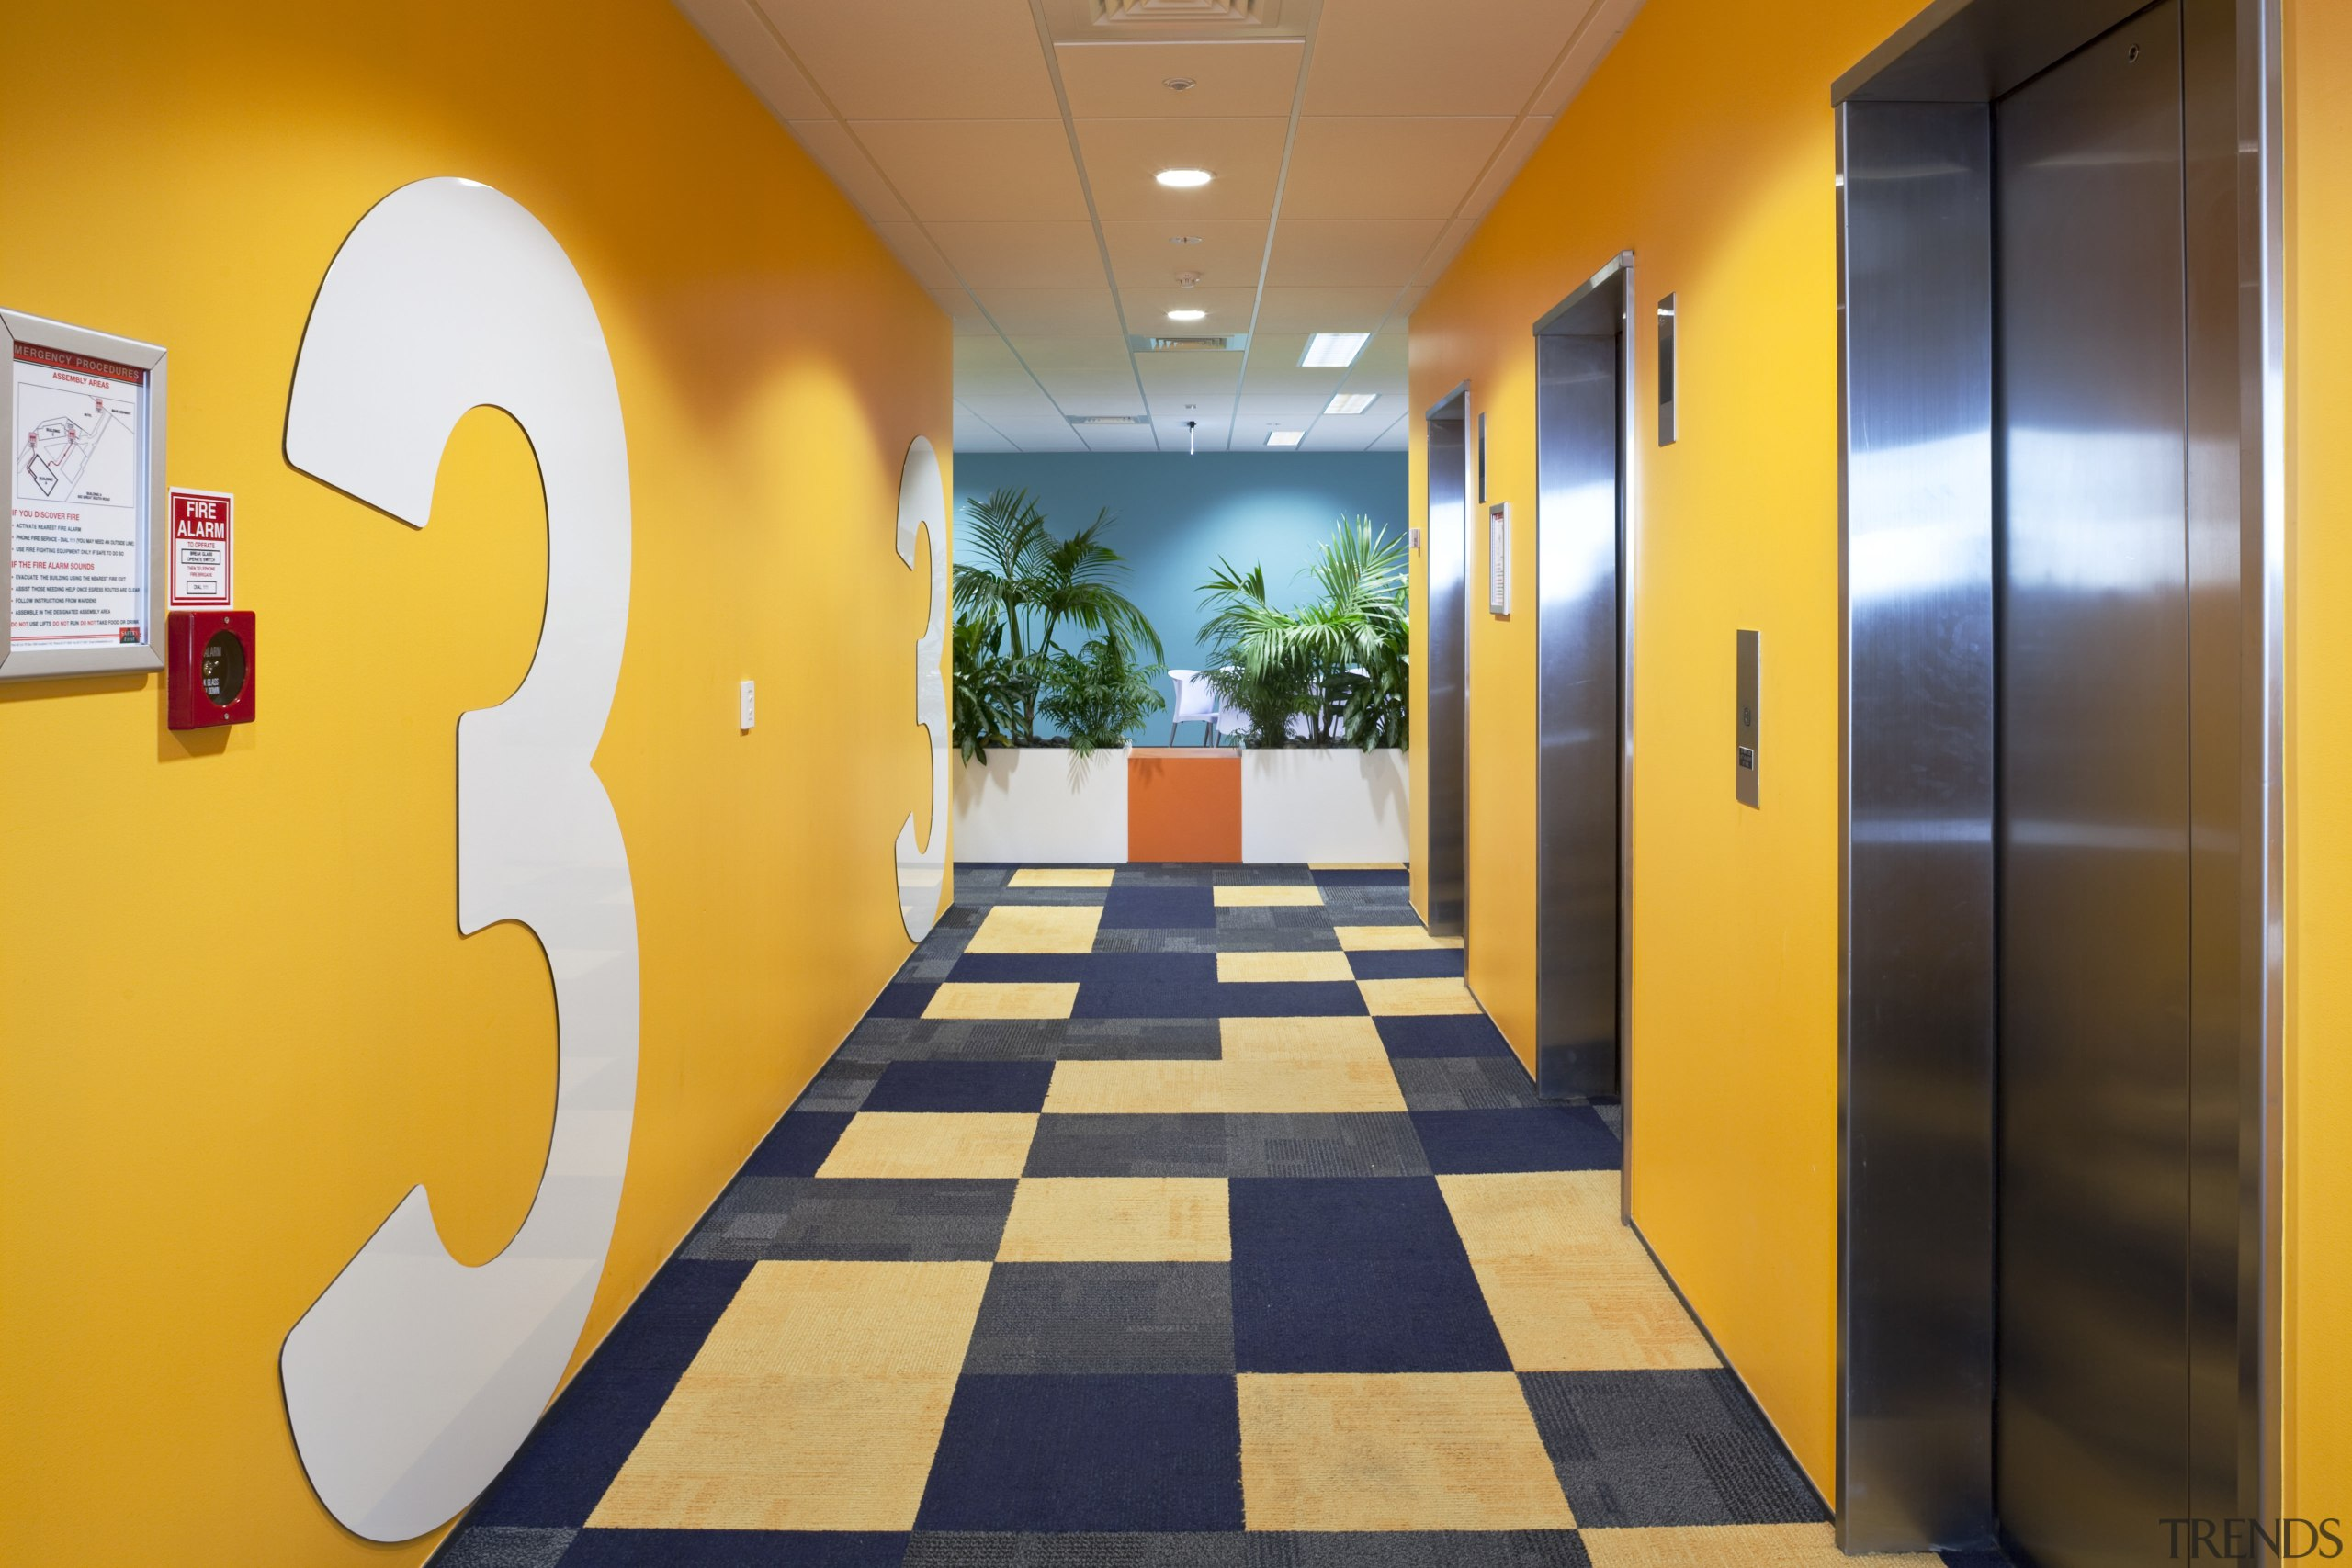 Interior view of Mercury Energy offices which features interior design, yellow, orange